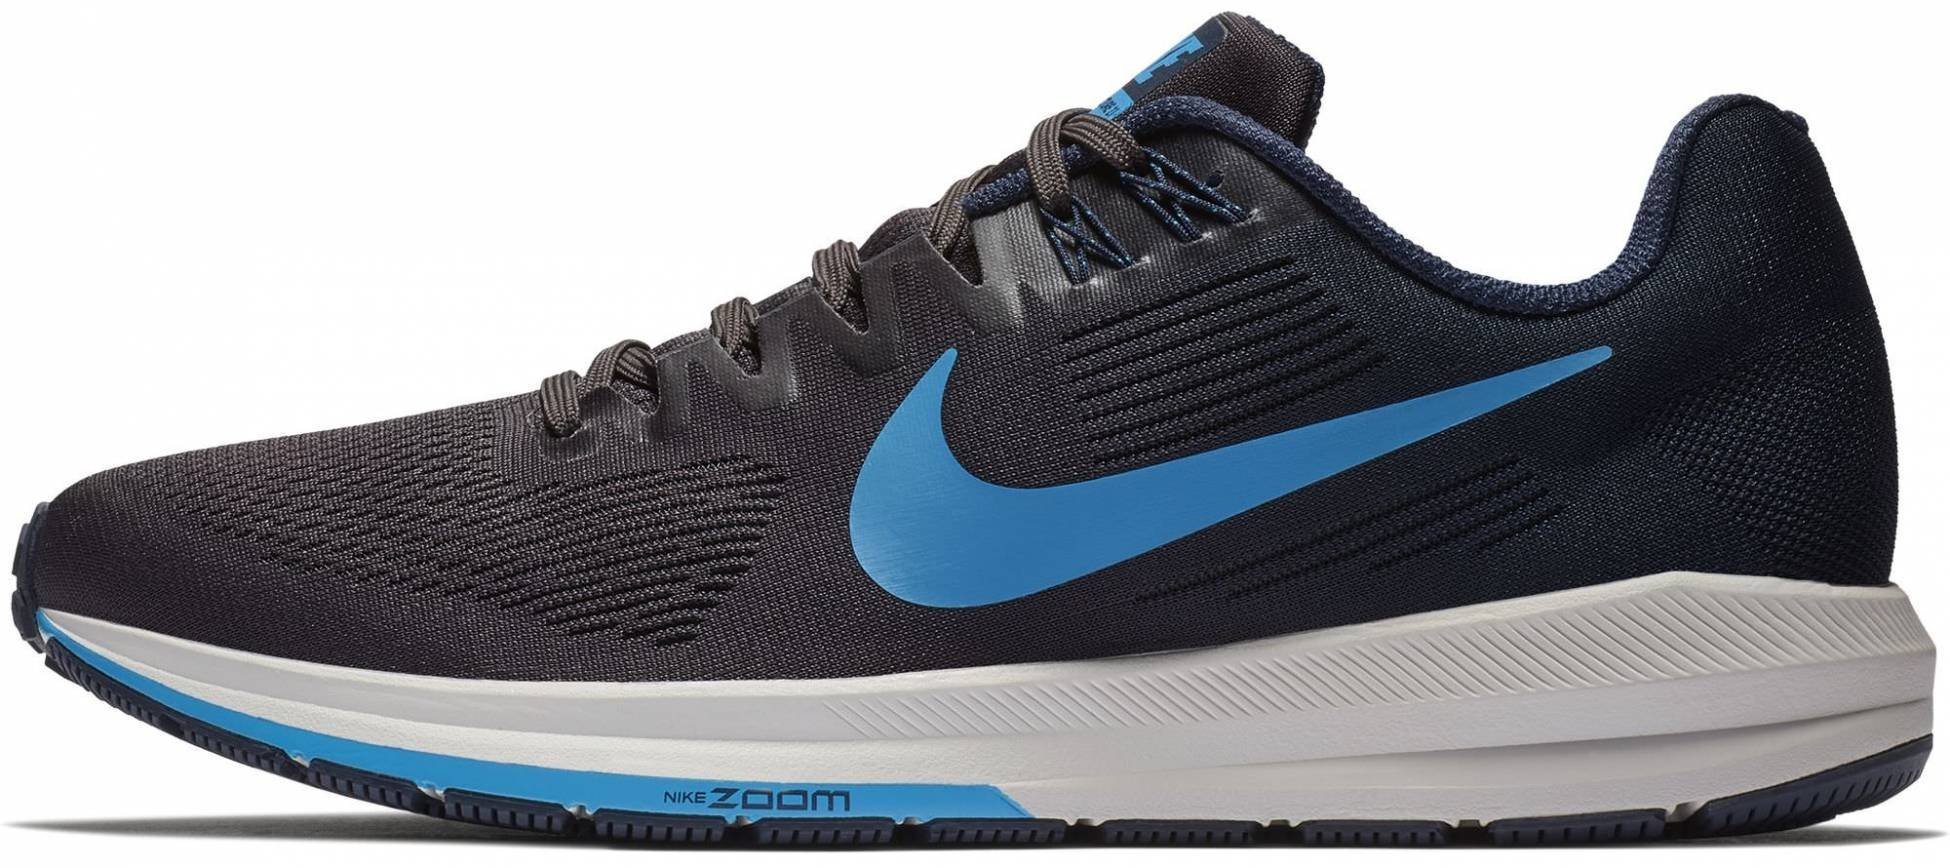 Algún día Poesía excepto por  Nike Air Zoom Structure 21 - Deals ($95), Facts, Reviews (2021) | RunRepeat